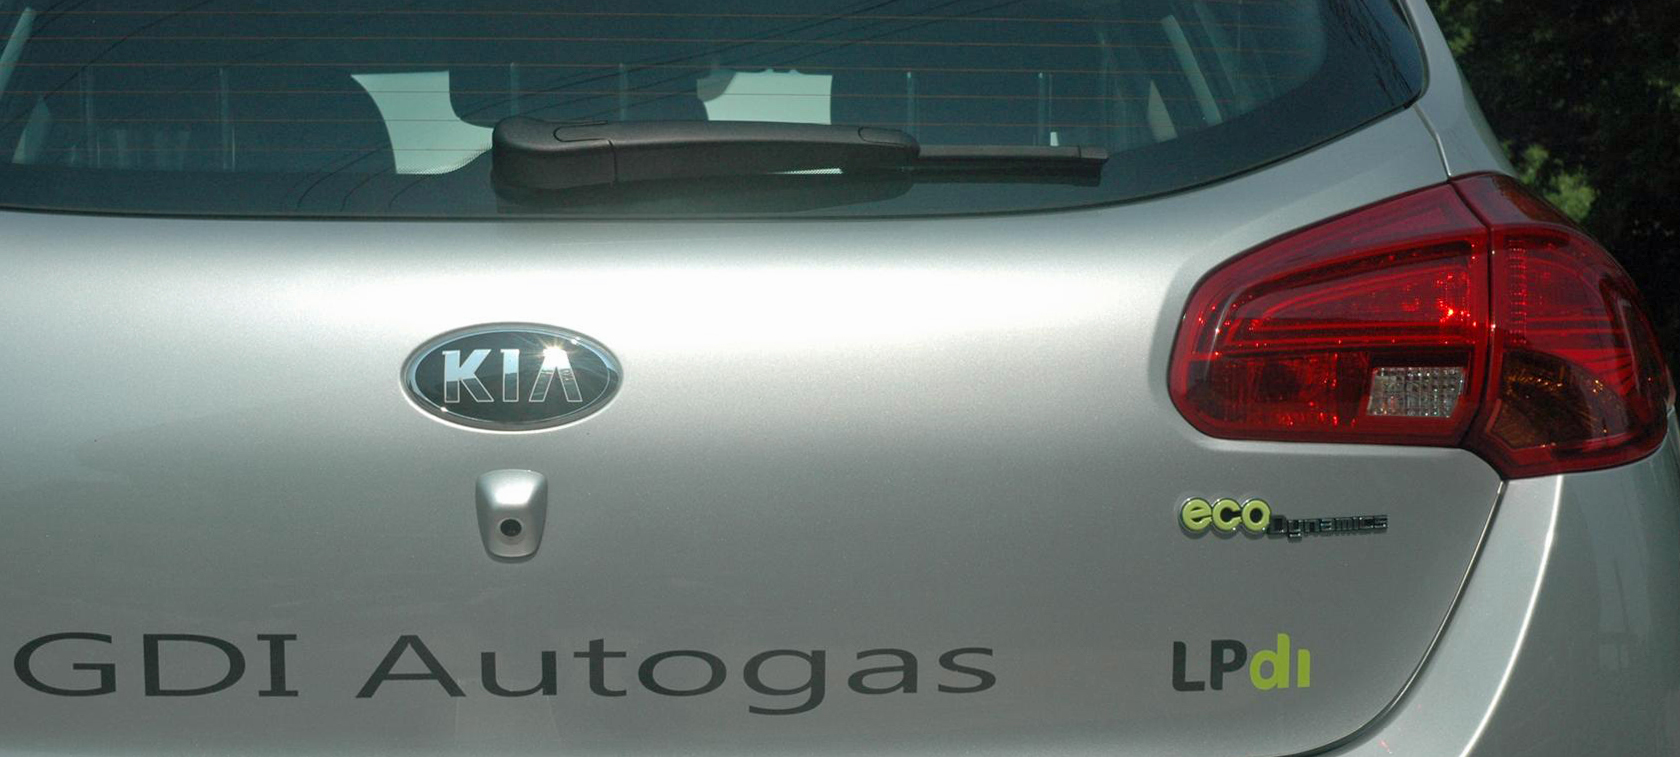 Kia Cee'd LPdi - directly and fluently